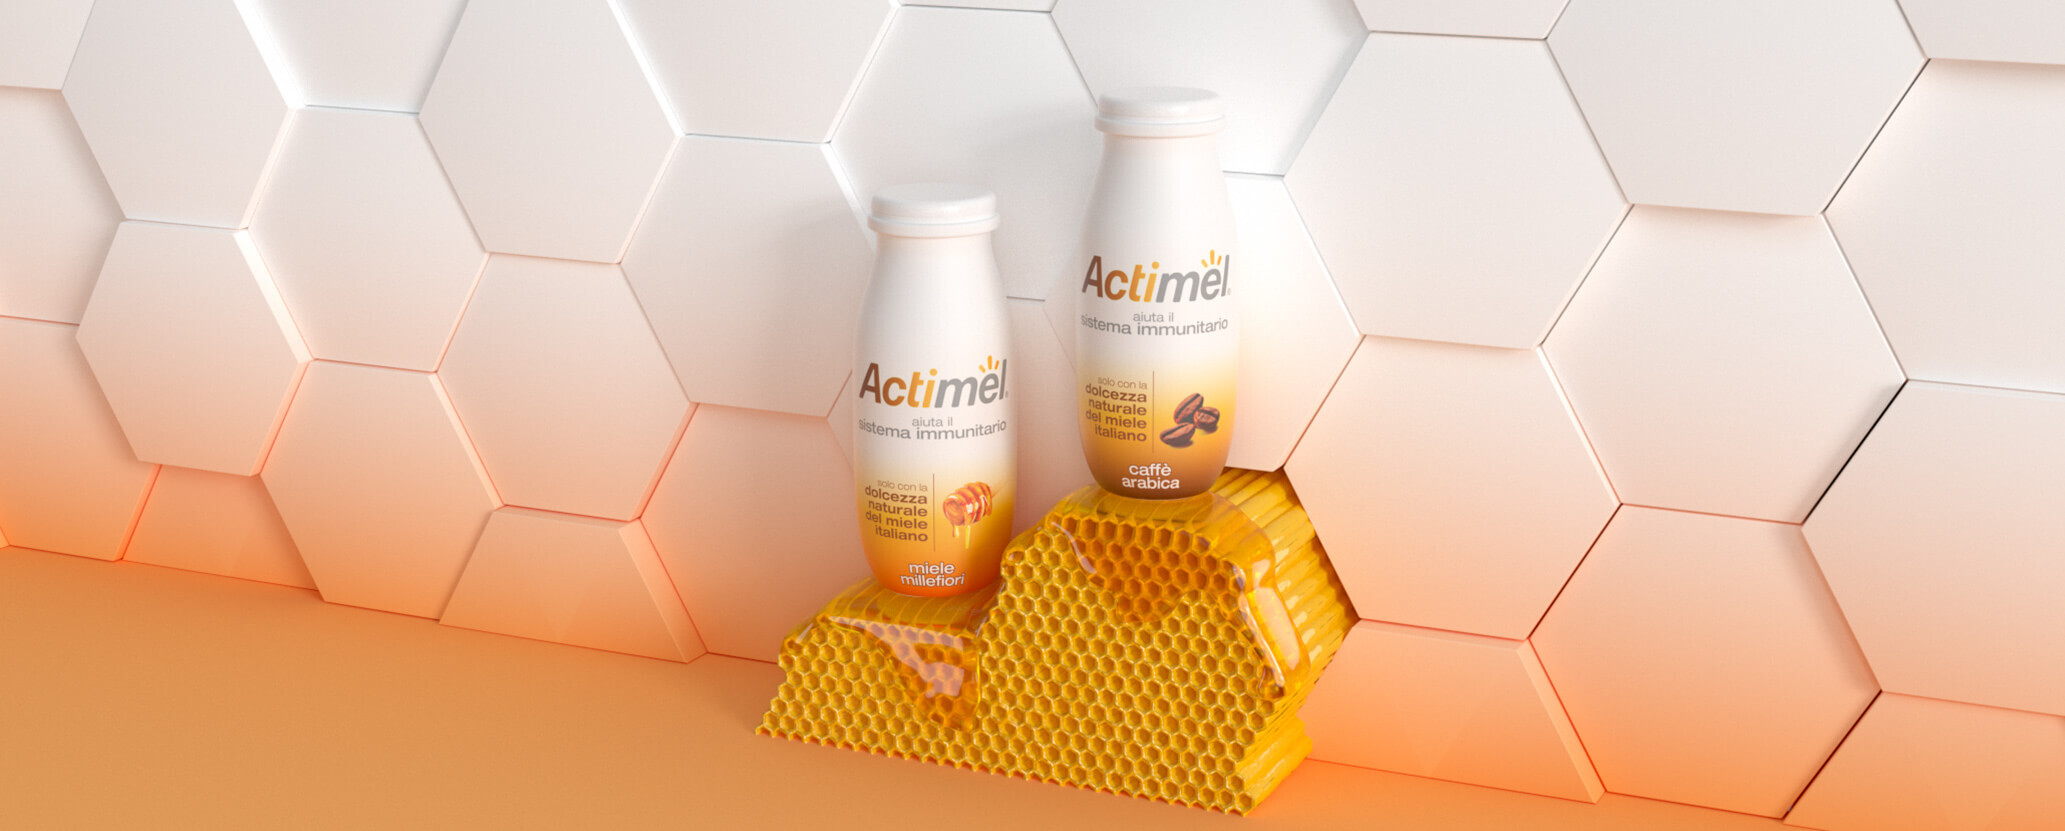 Actimel Miele Background